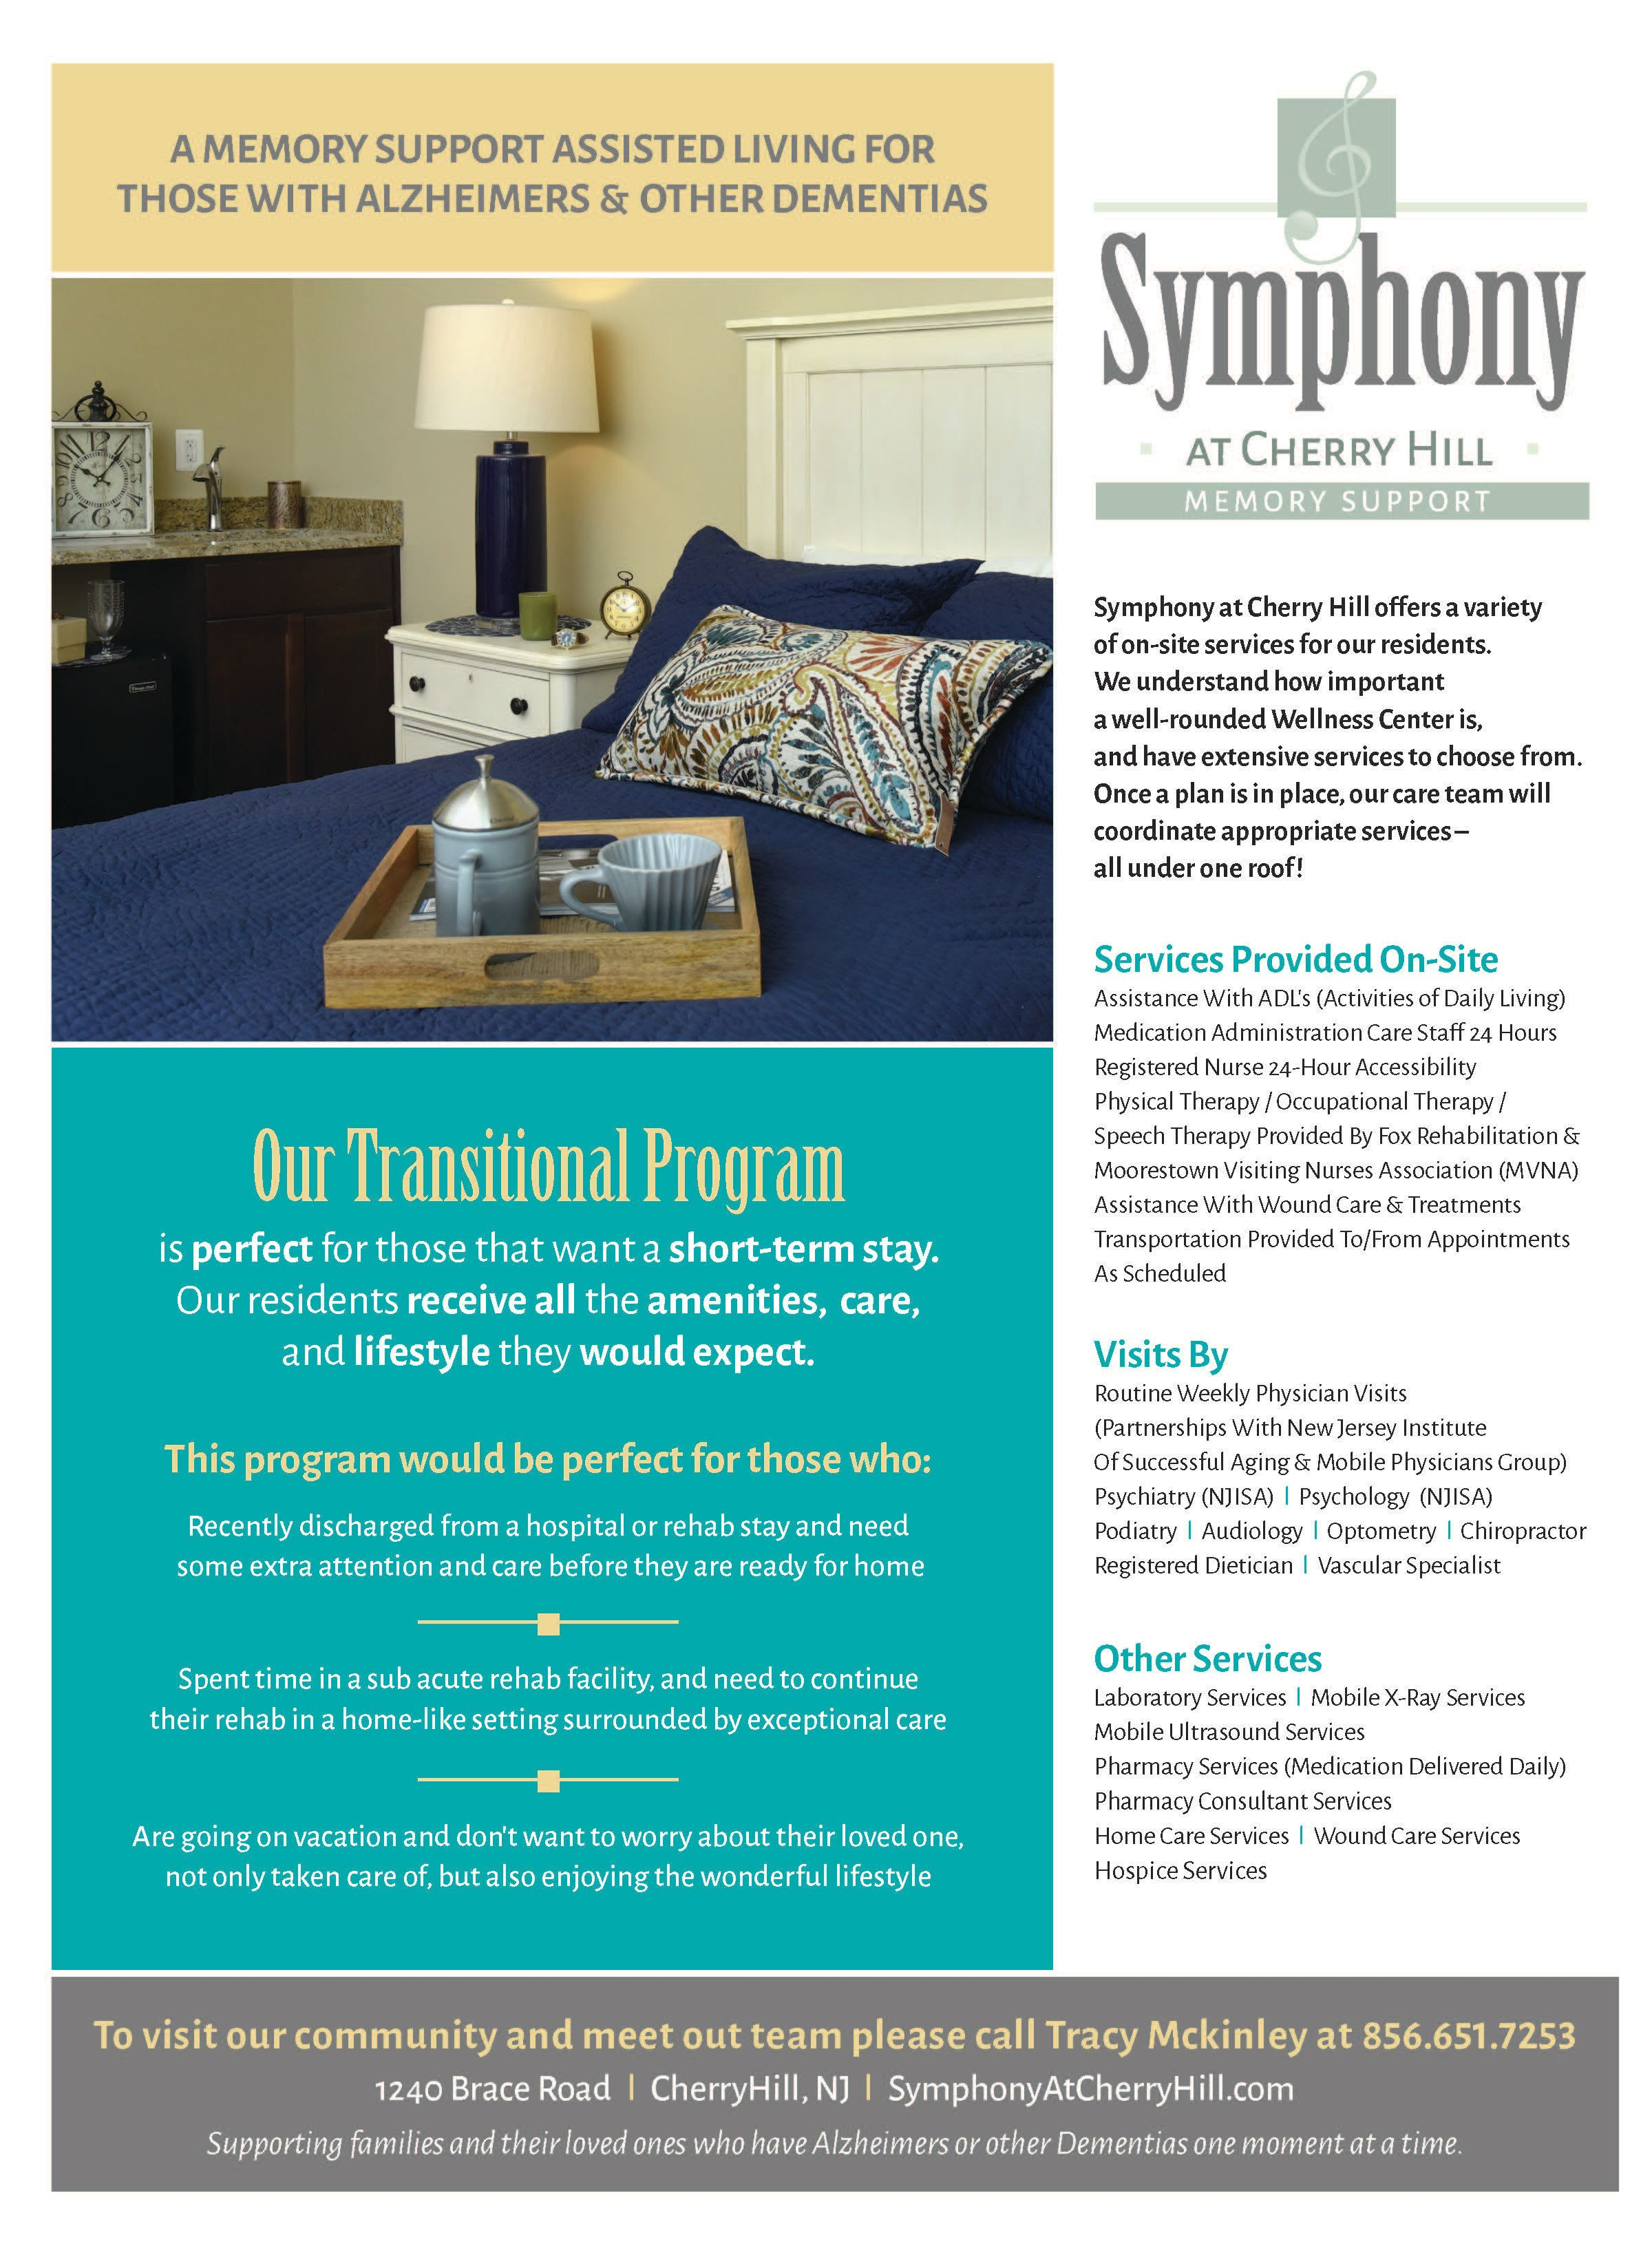 The Transitional program brochure from Symphony at Cherry Hill in Cherry Hill, New Jersey.